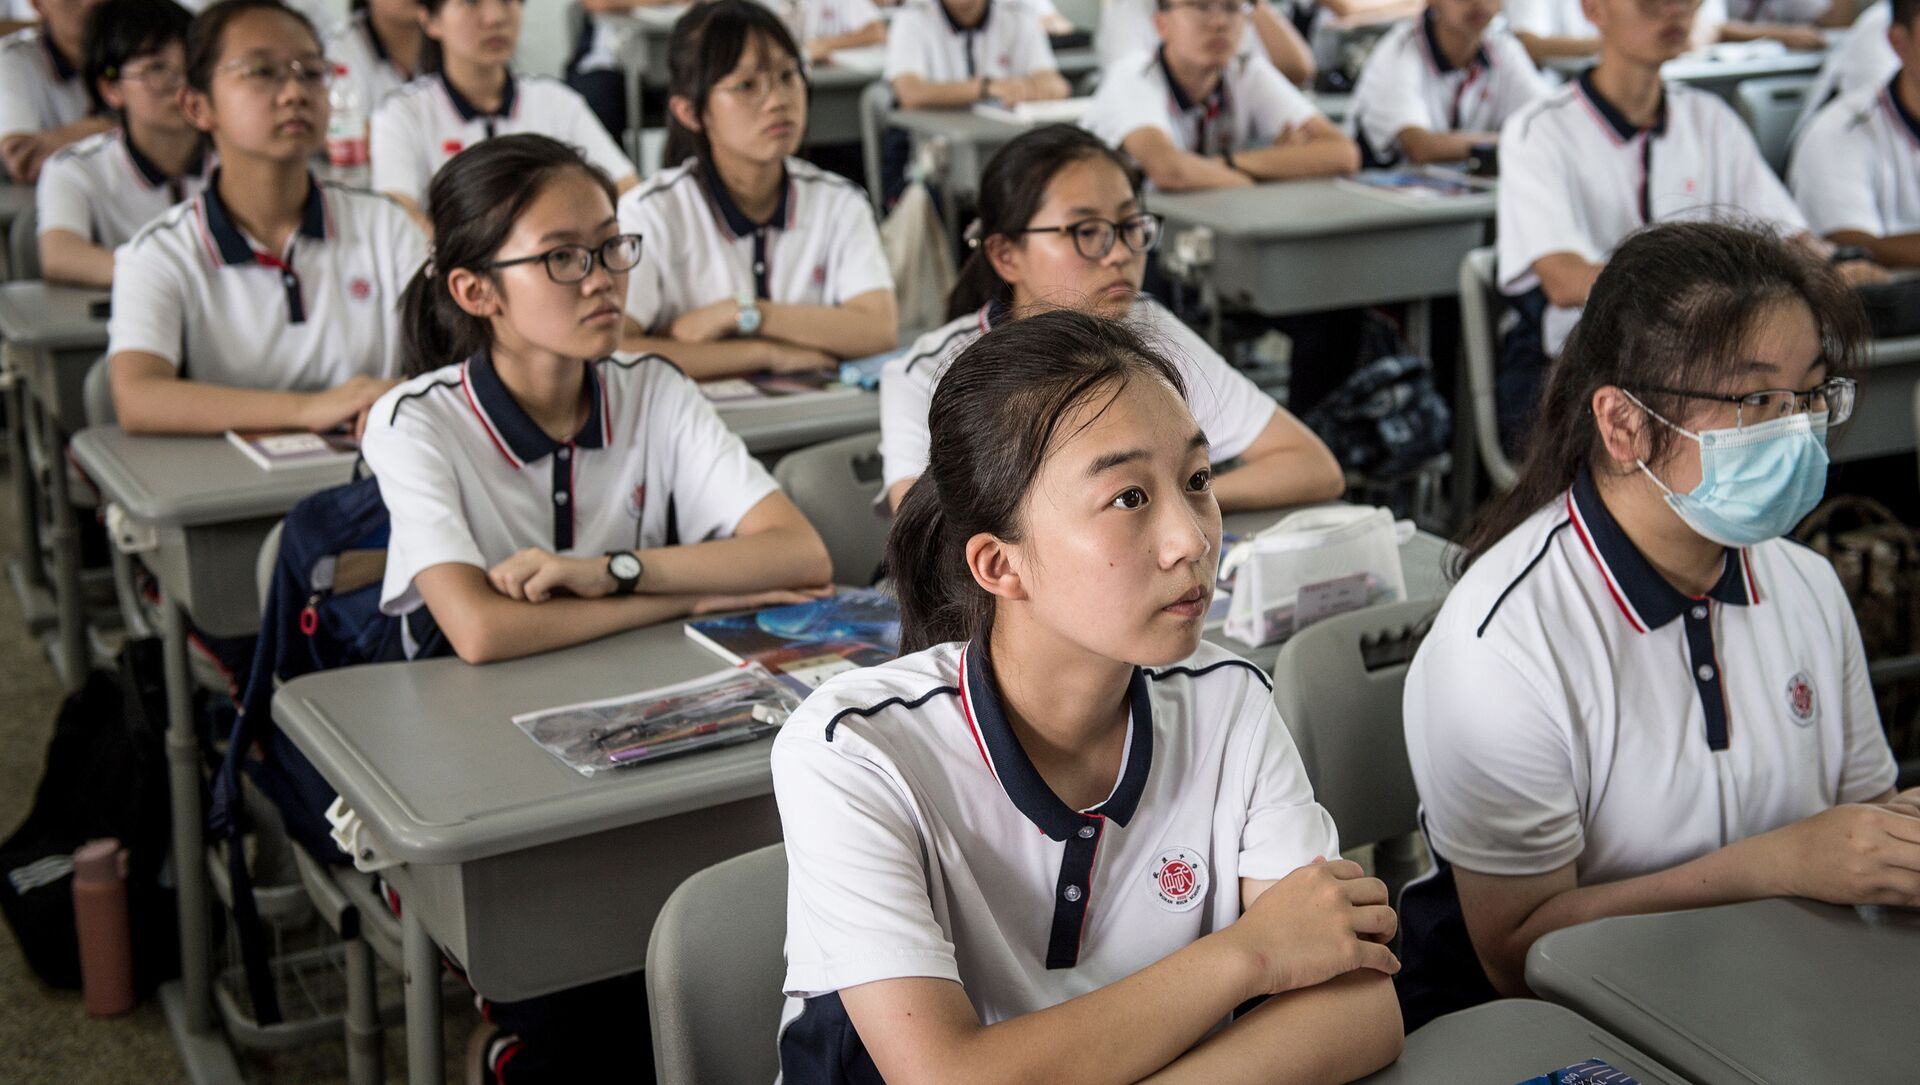 Students attend a class at Wuhan High School on the first day of the new semester in Wuhan in China's central Hubei province on September 1, 2020.  - Sputnik Азербайджан, 1920, 30.07.2021